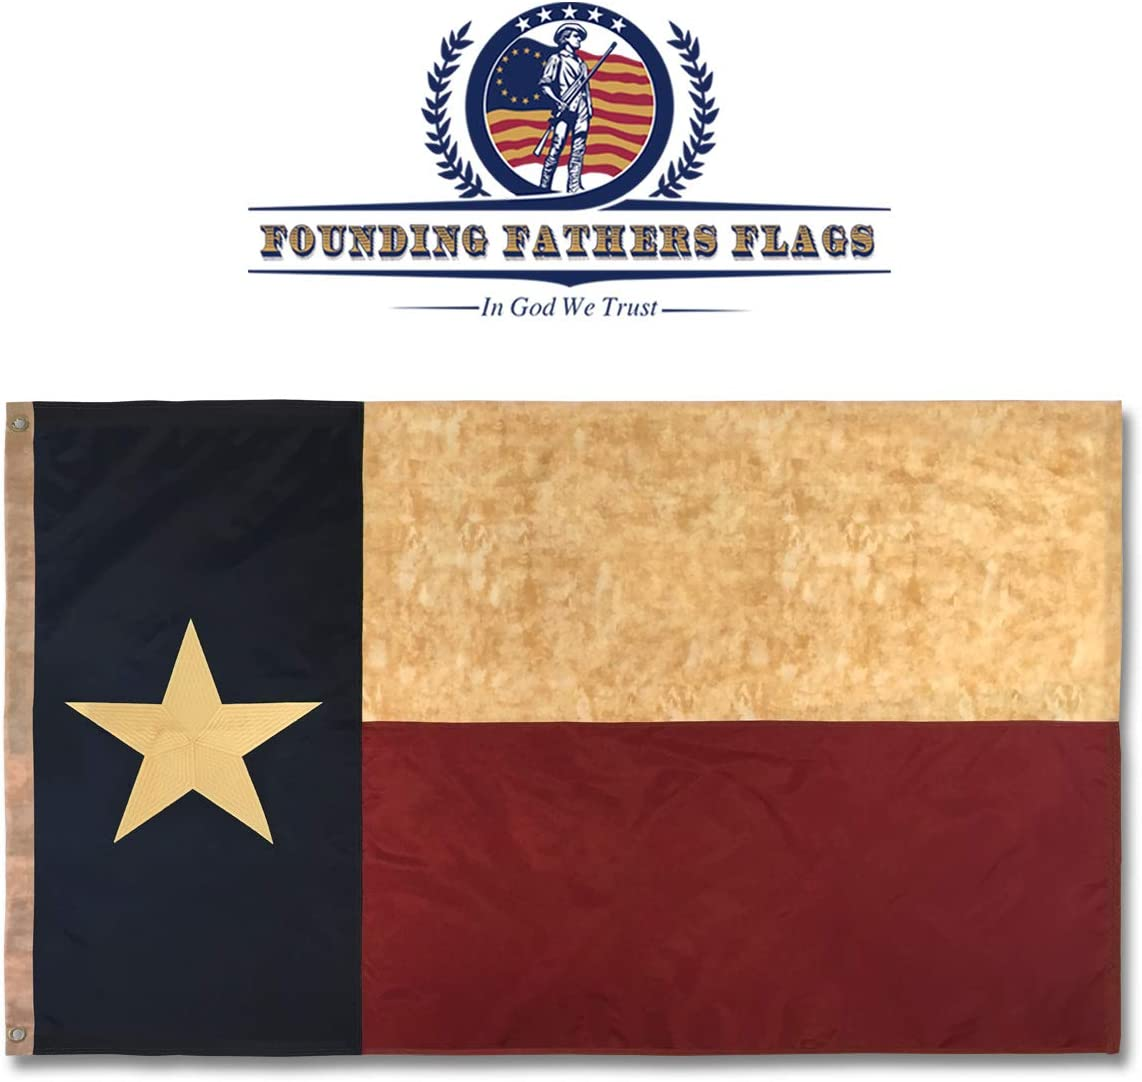 Founding Fathers Flags Embroidered Texas Vintage Flag - 3x5ft Oxford Polyester - Texas